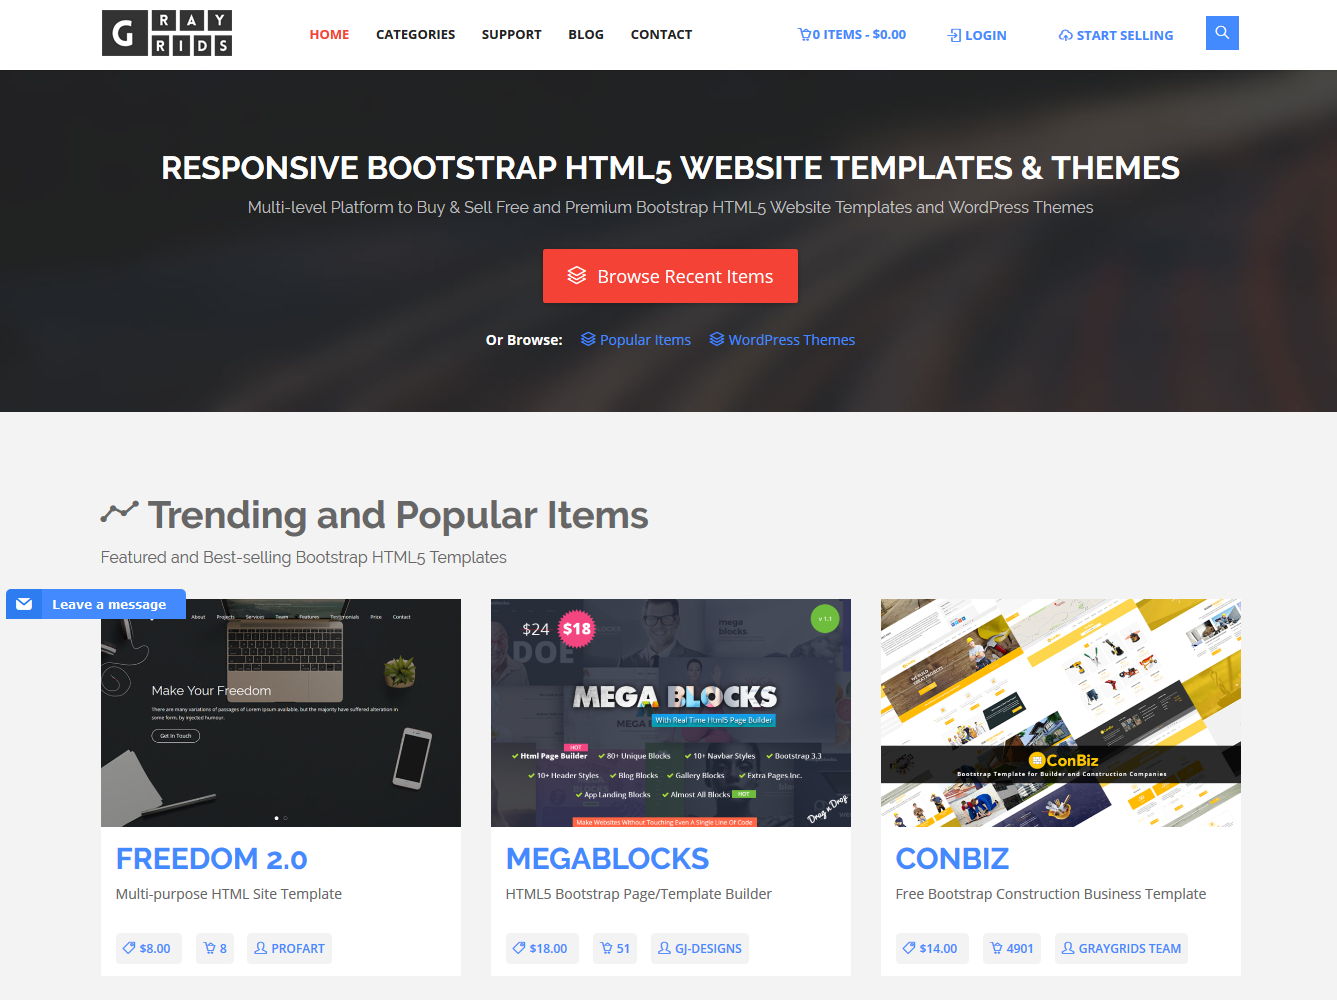 Best Bootstrap Themes Templates Marketplaces To Buy And Sell - Html5 web page template